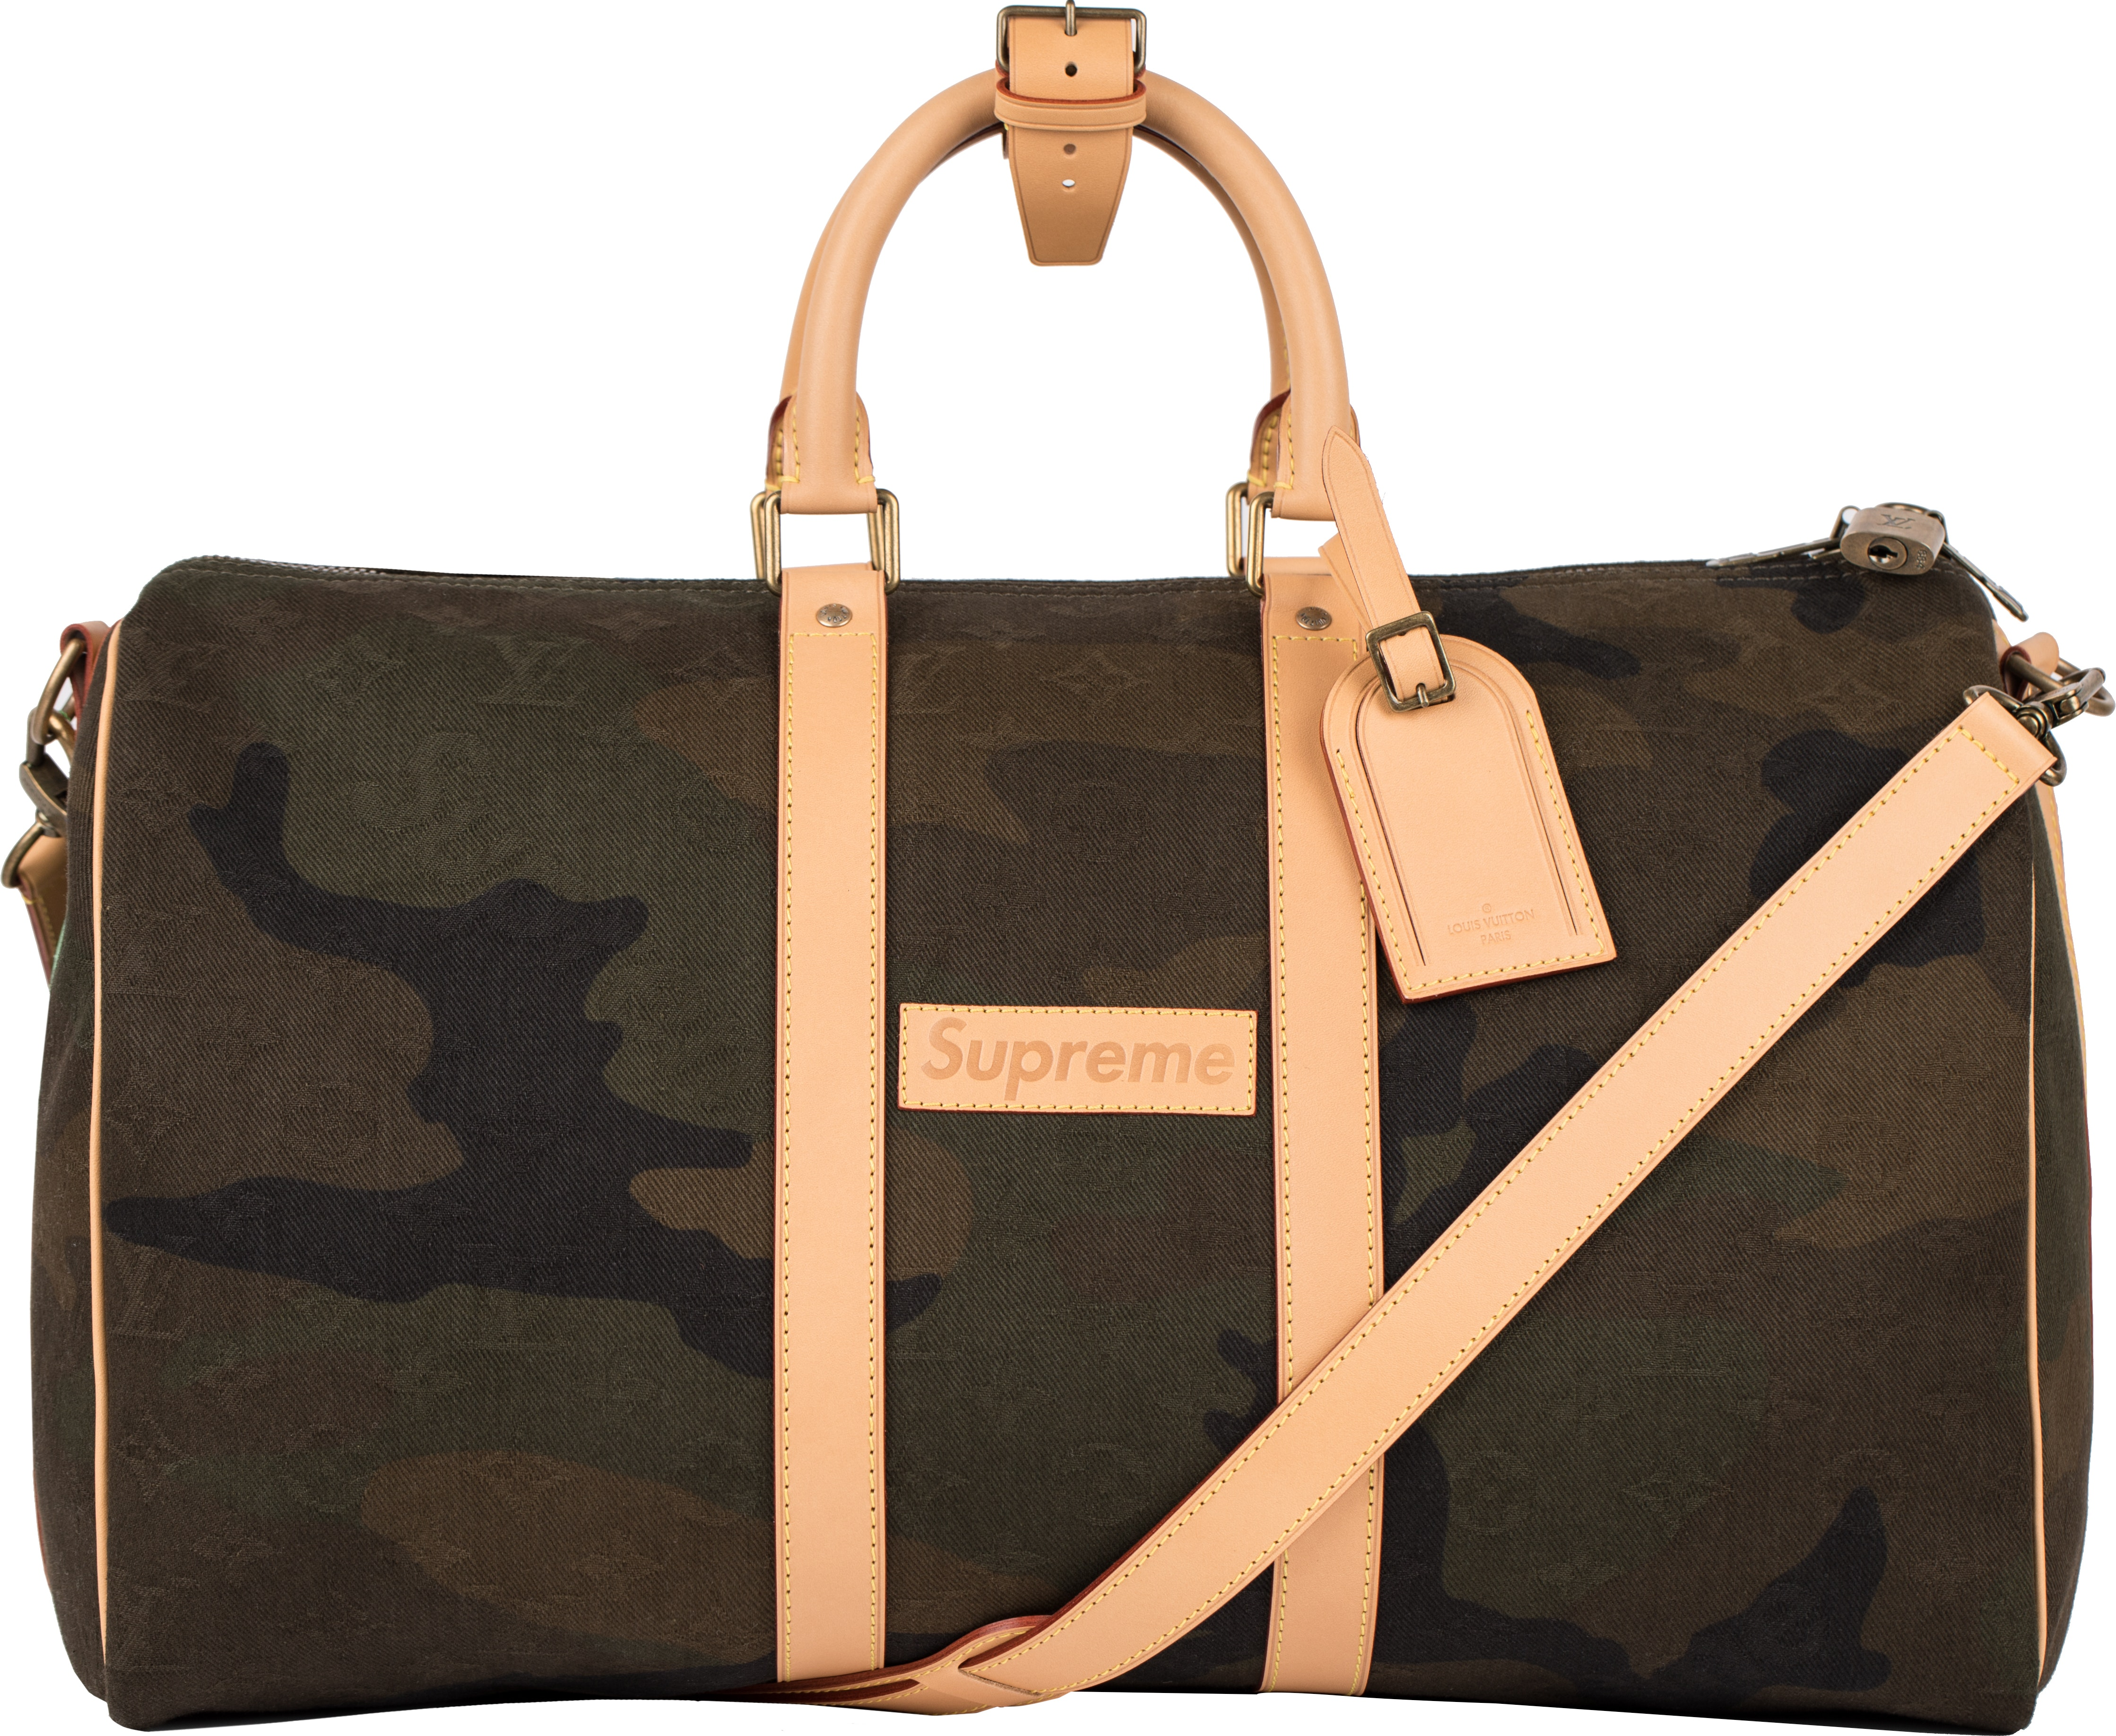 Louis Vuitton x Supreme Keepall Bandouliere Monogram Camo 45